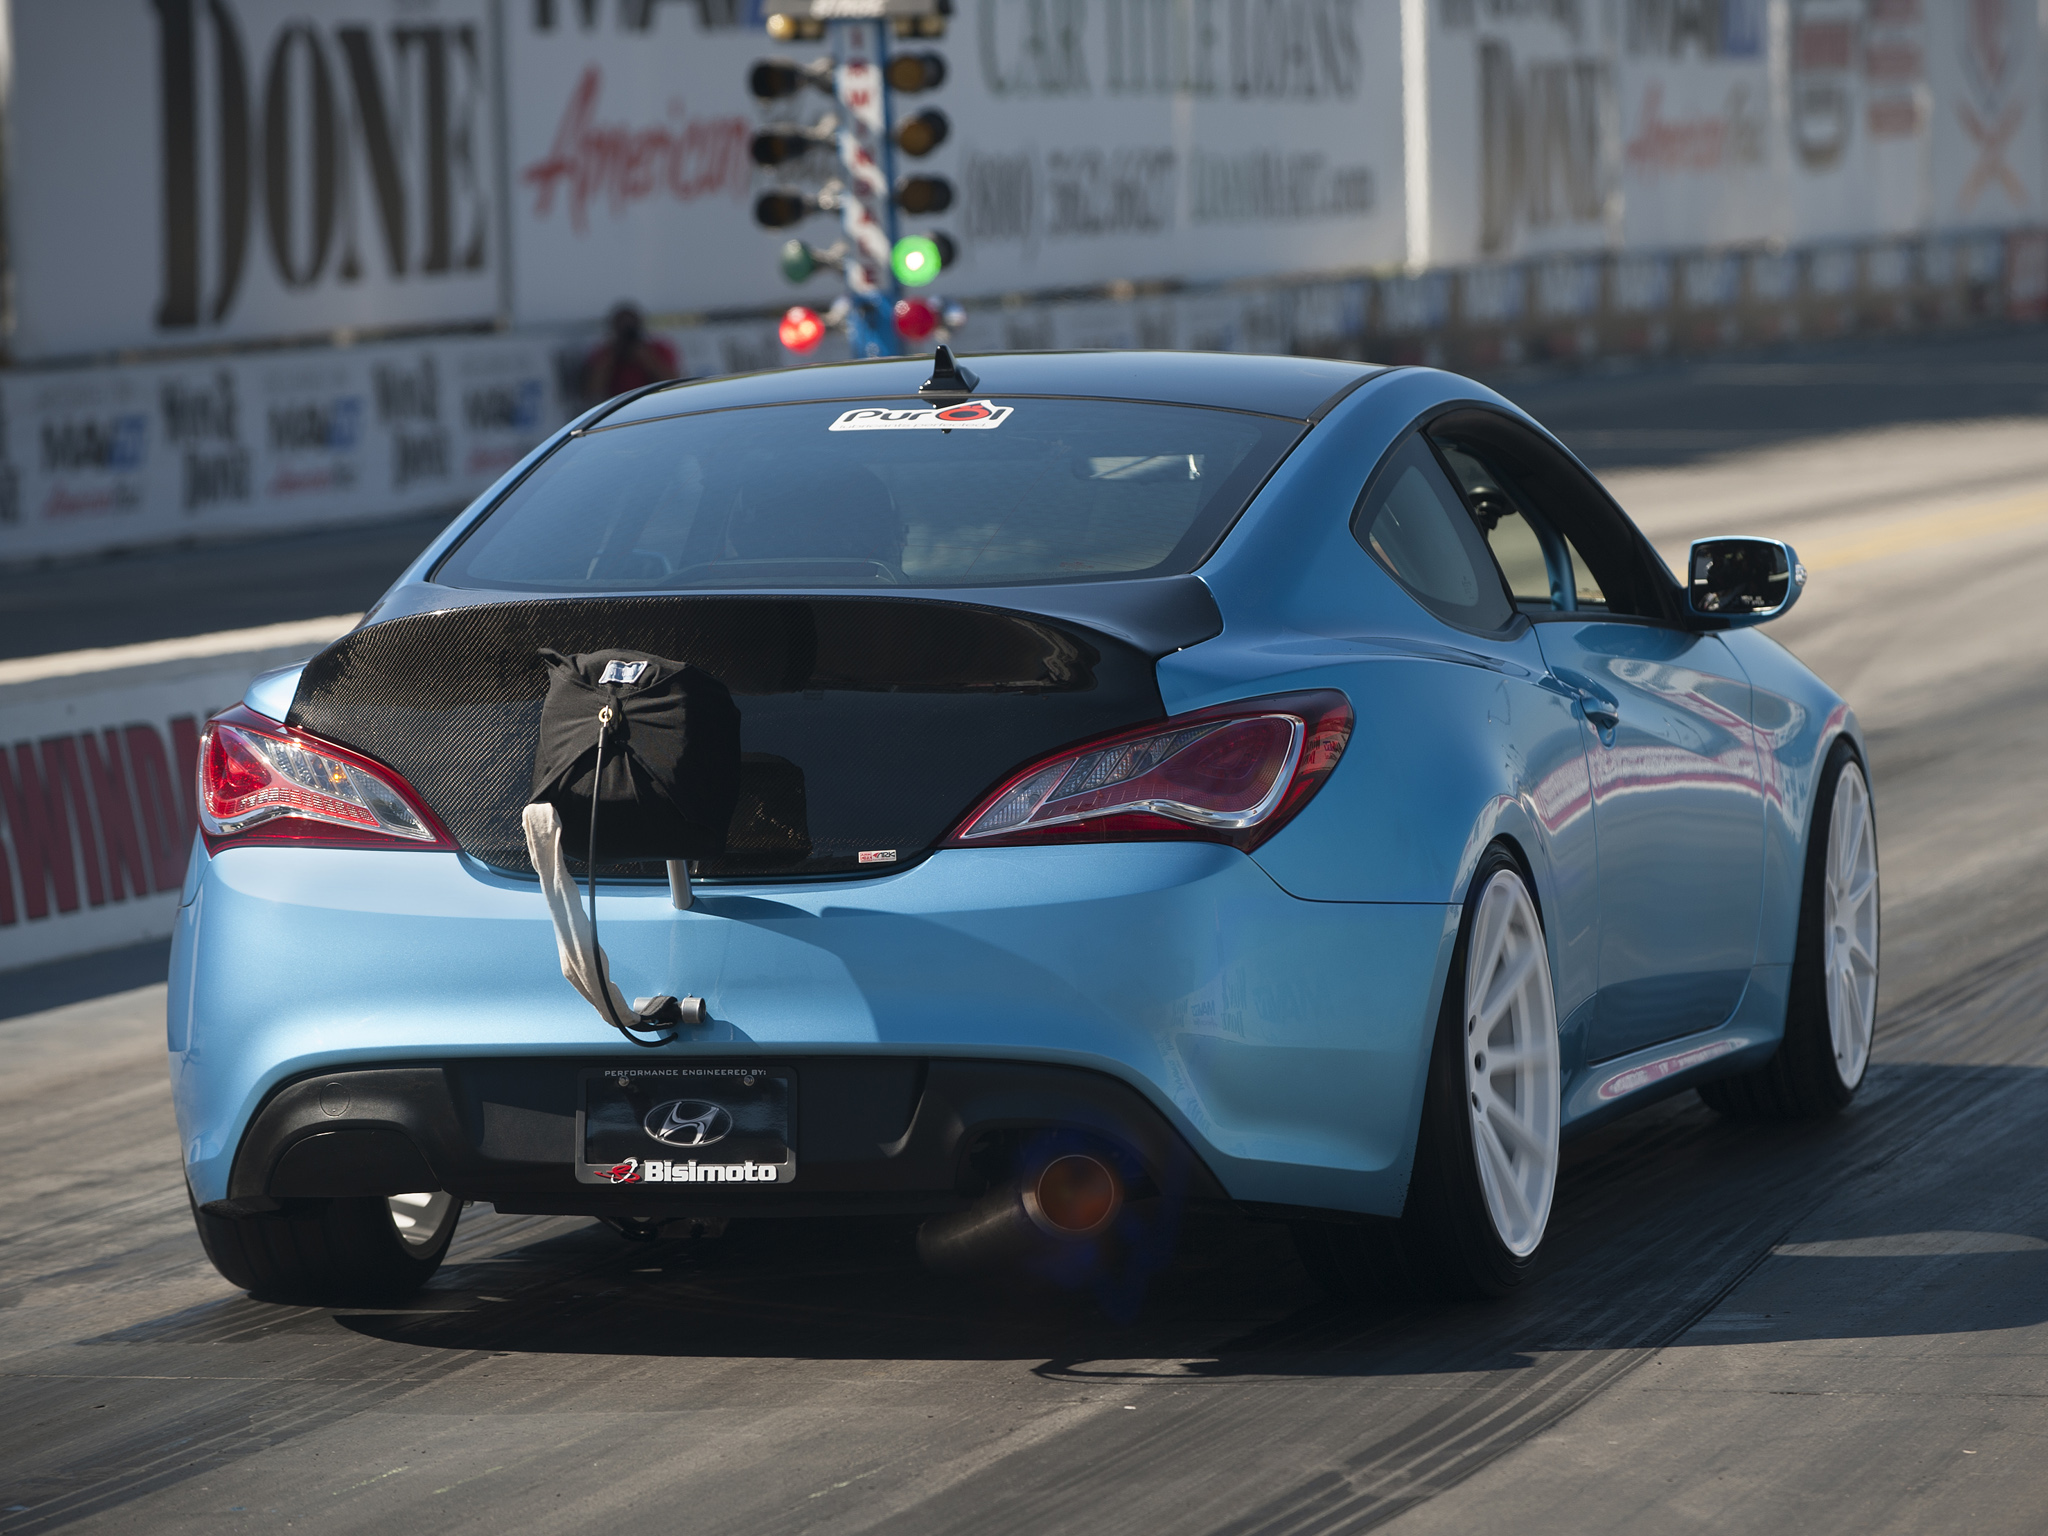 2013 hyundai genesis coupe by bisimoto engineering tuning. Black Bedroom Furniture Sets. Home Design Ideas